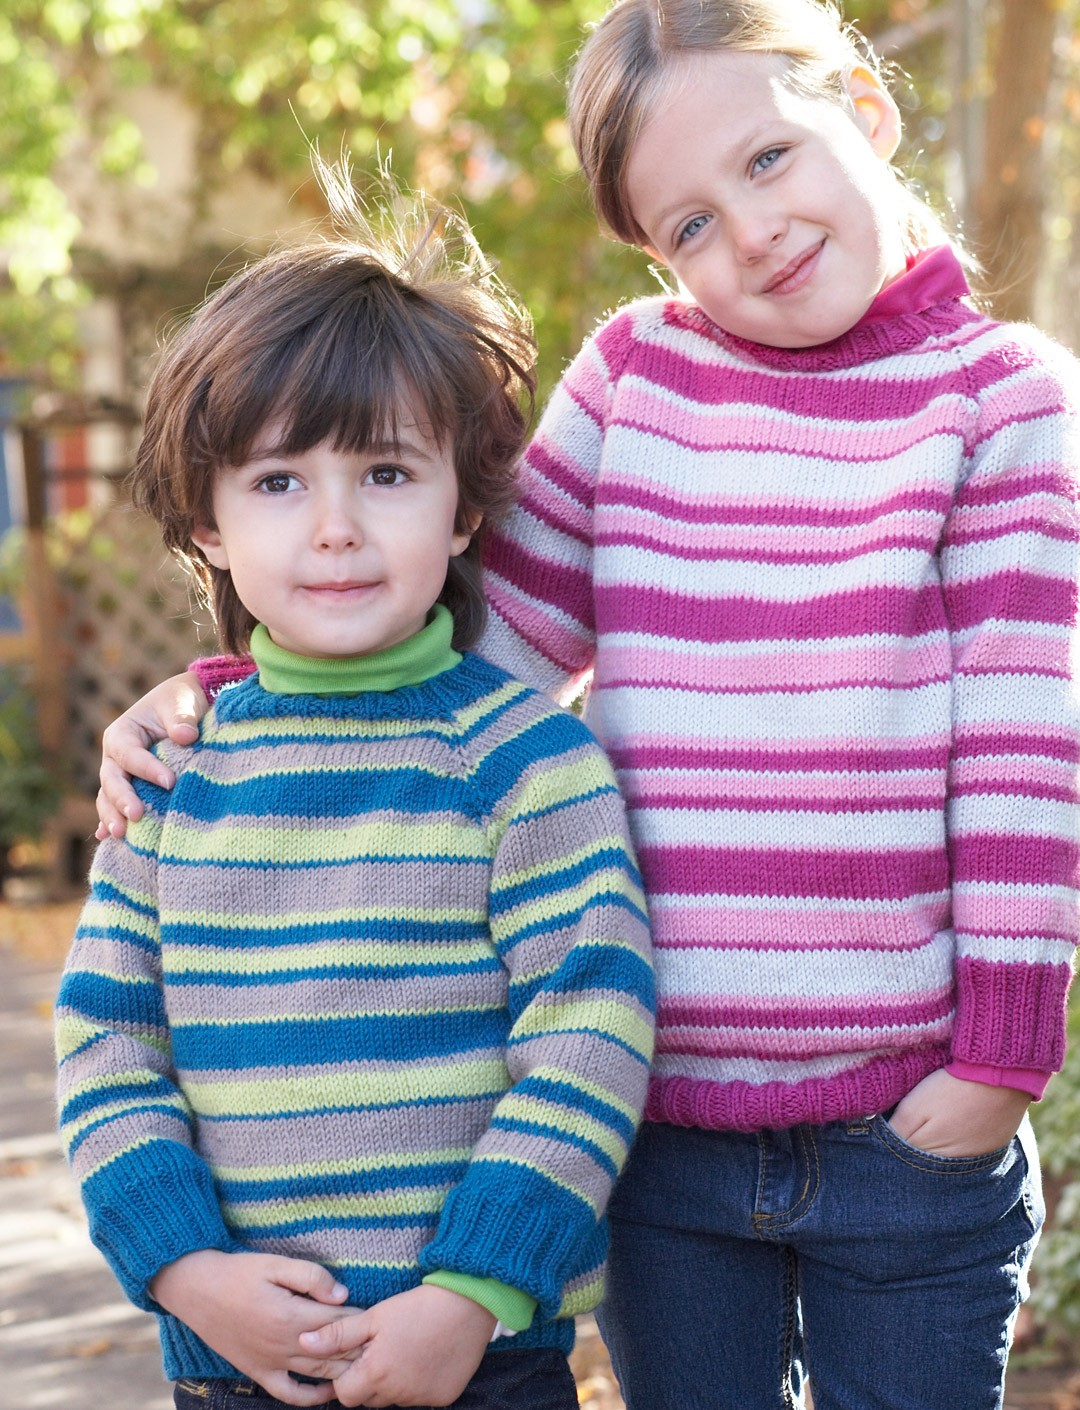 Knitting Patterns For Sweaters For Toddlers : Patons Kids Top-Down Striped Sweater, Knit Pattern ...